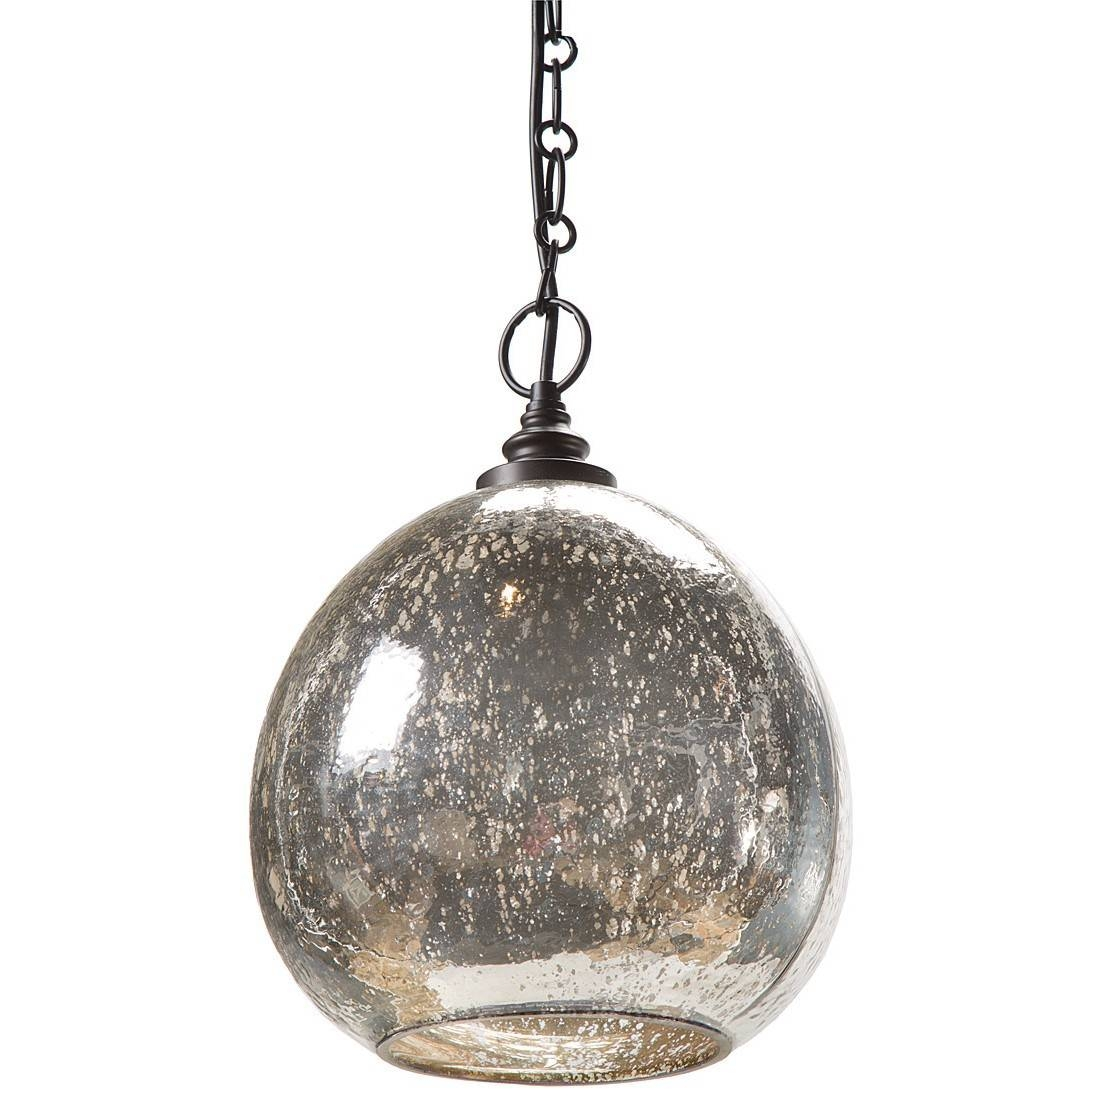 Chandelier: Wondrous Mercury Glass Pendant Lighting | Magnificent regarding Serena Antique Mercury Glass Pendants (Image 6 of 15)